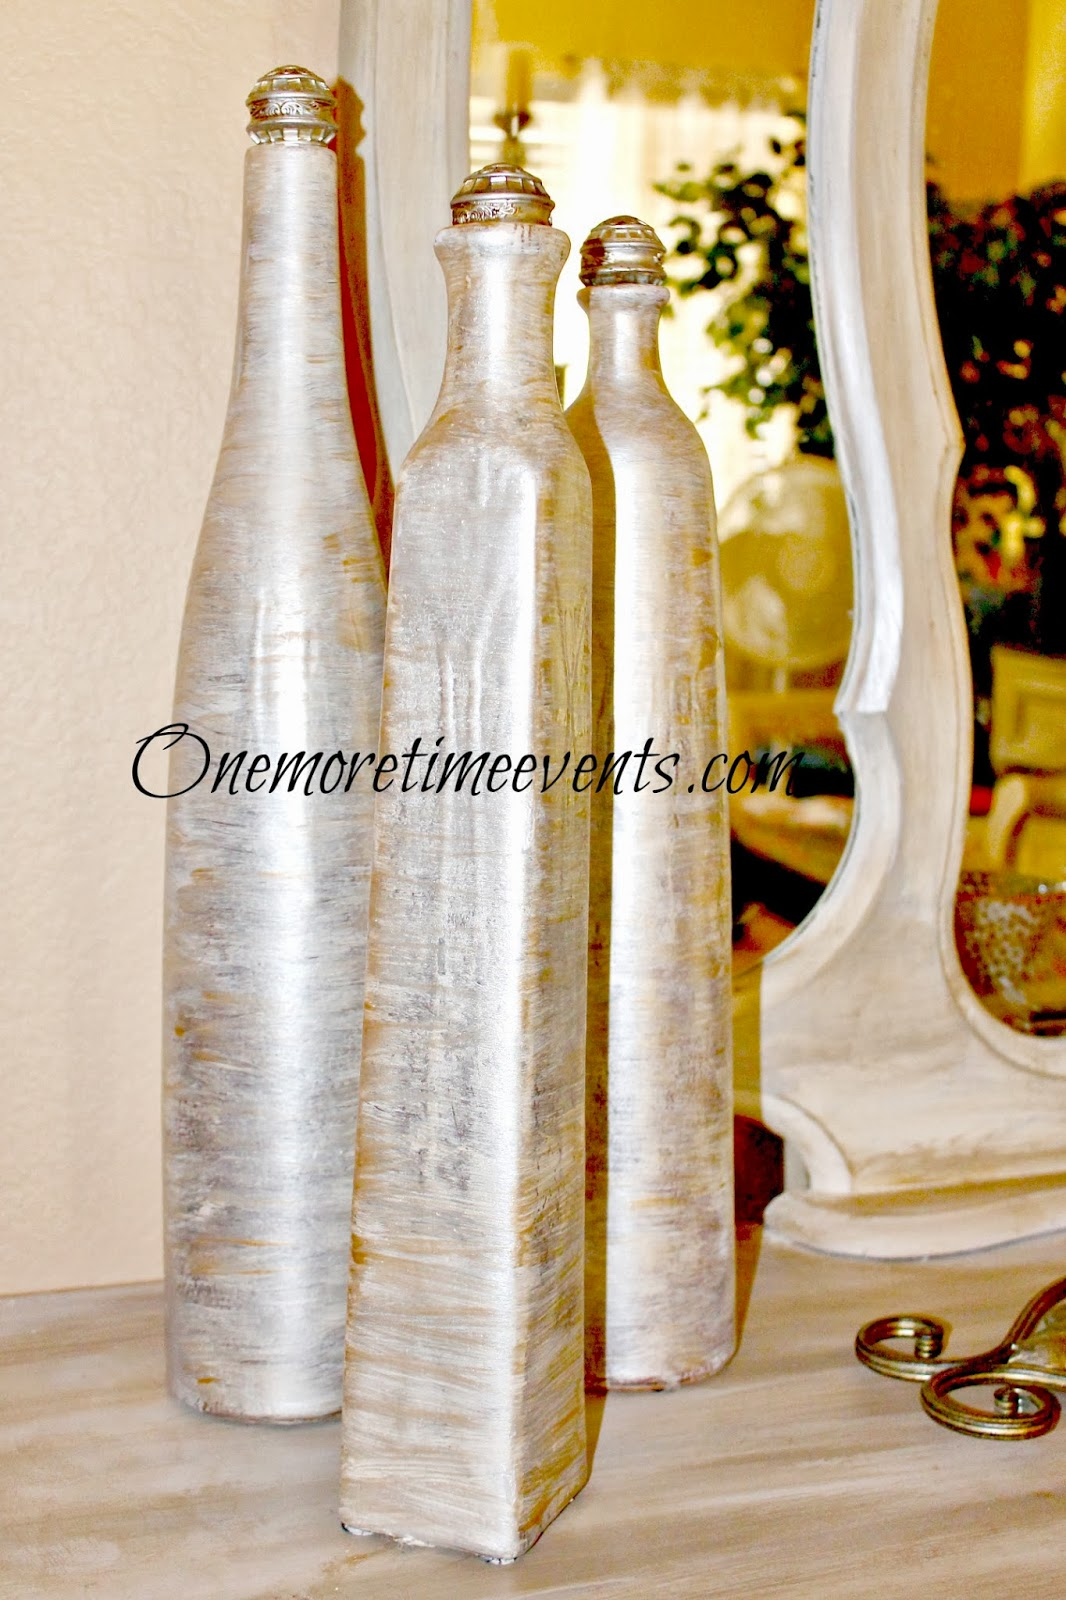 Faux Ivory Vases with knobs at One More Time Events.com #knobs,#metallicpaint